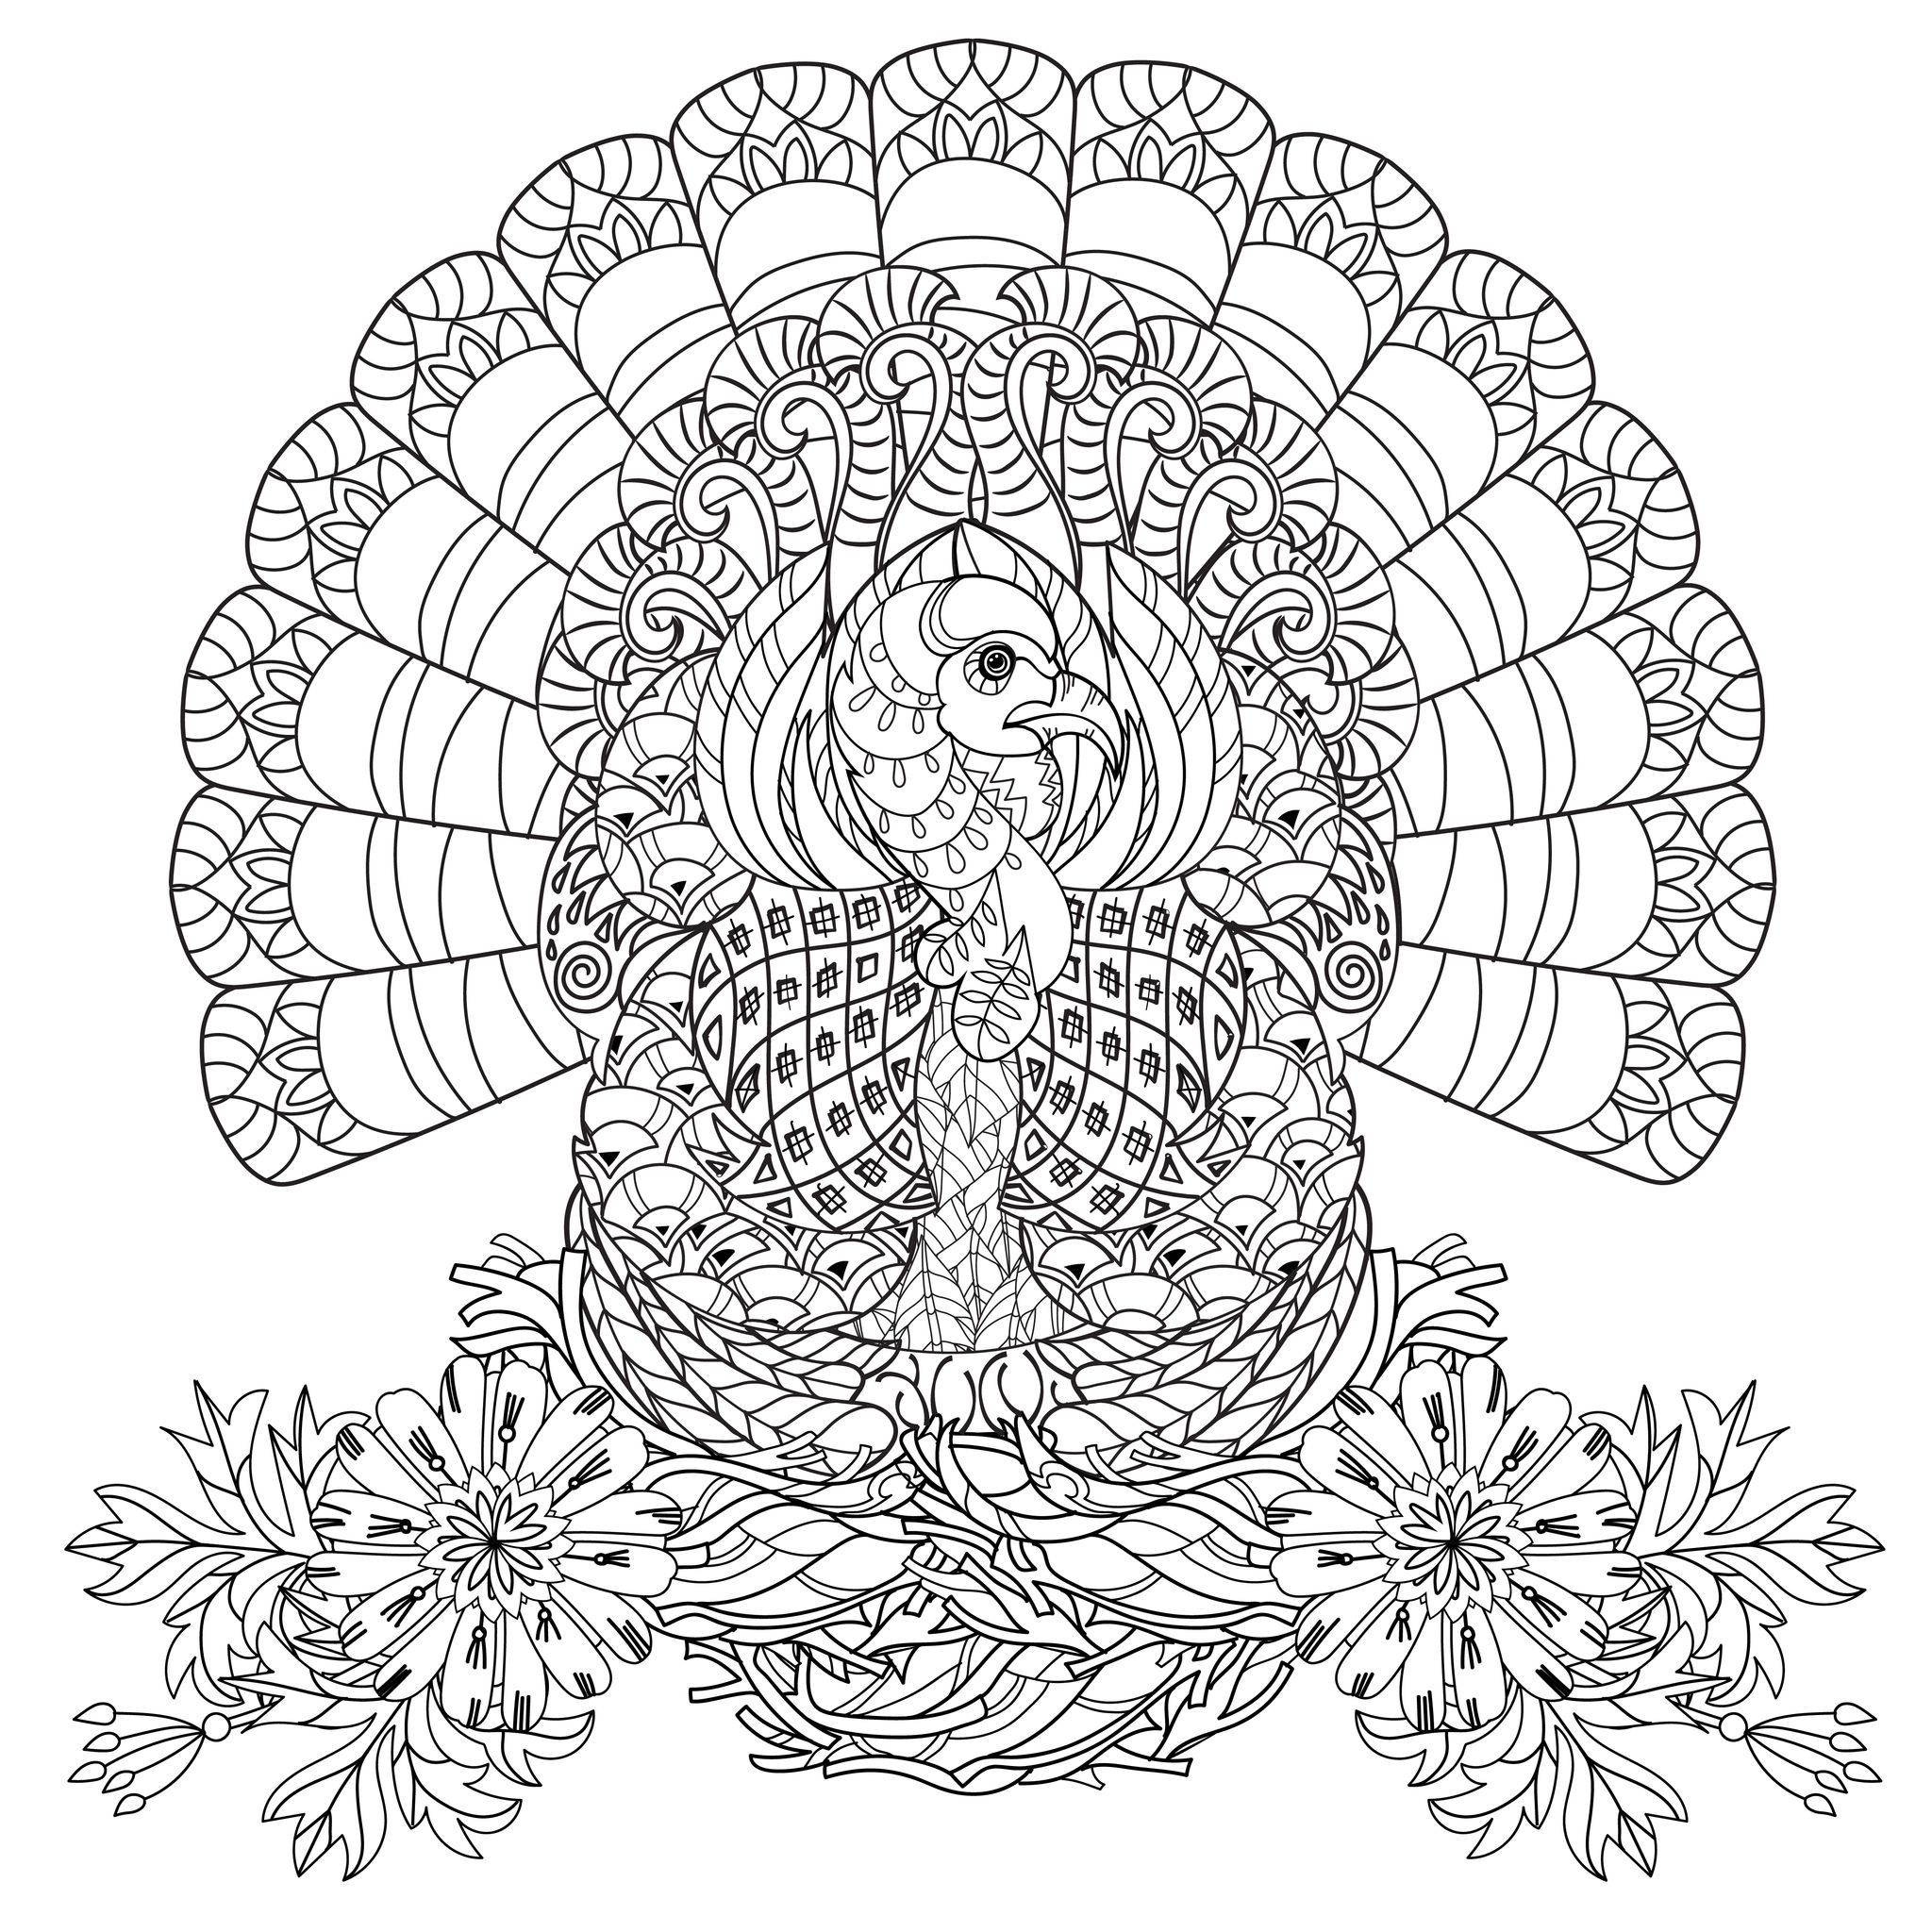 cell coloring page - thanksgiving coloring pages for adults